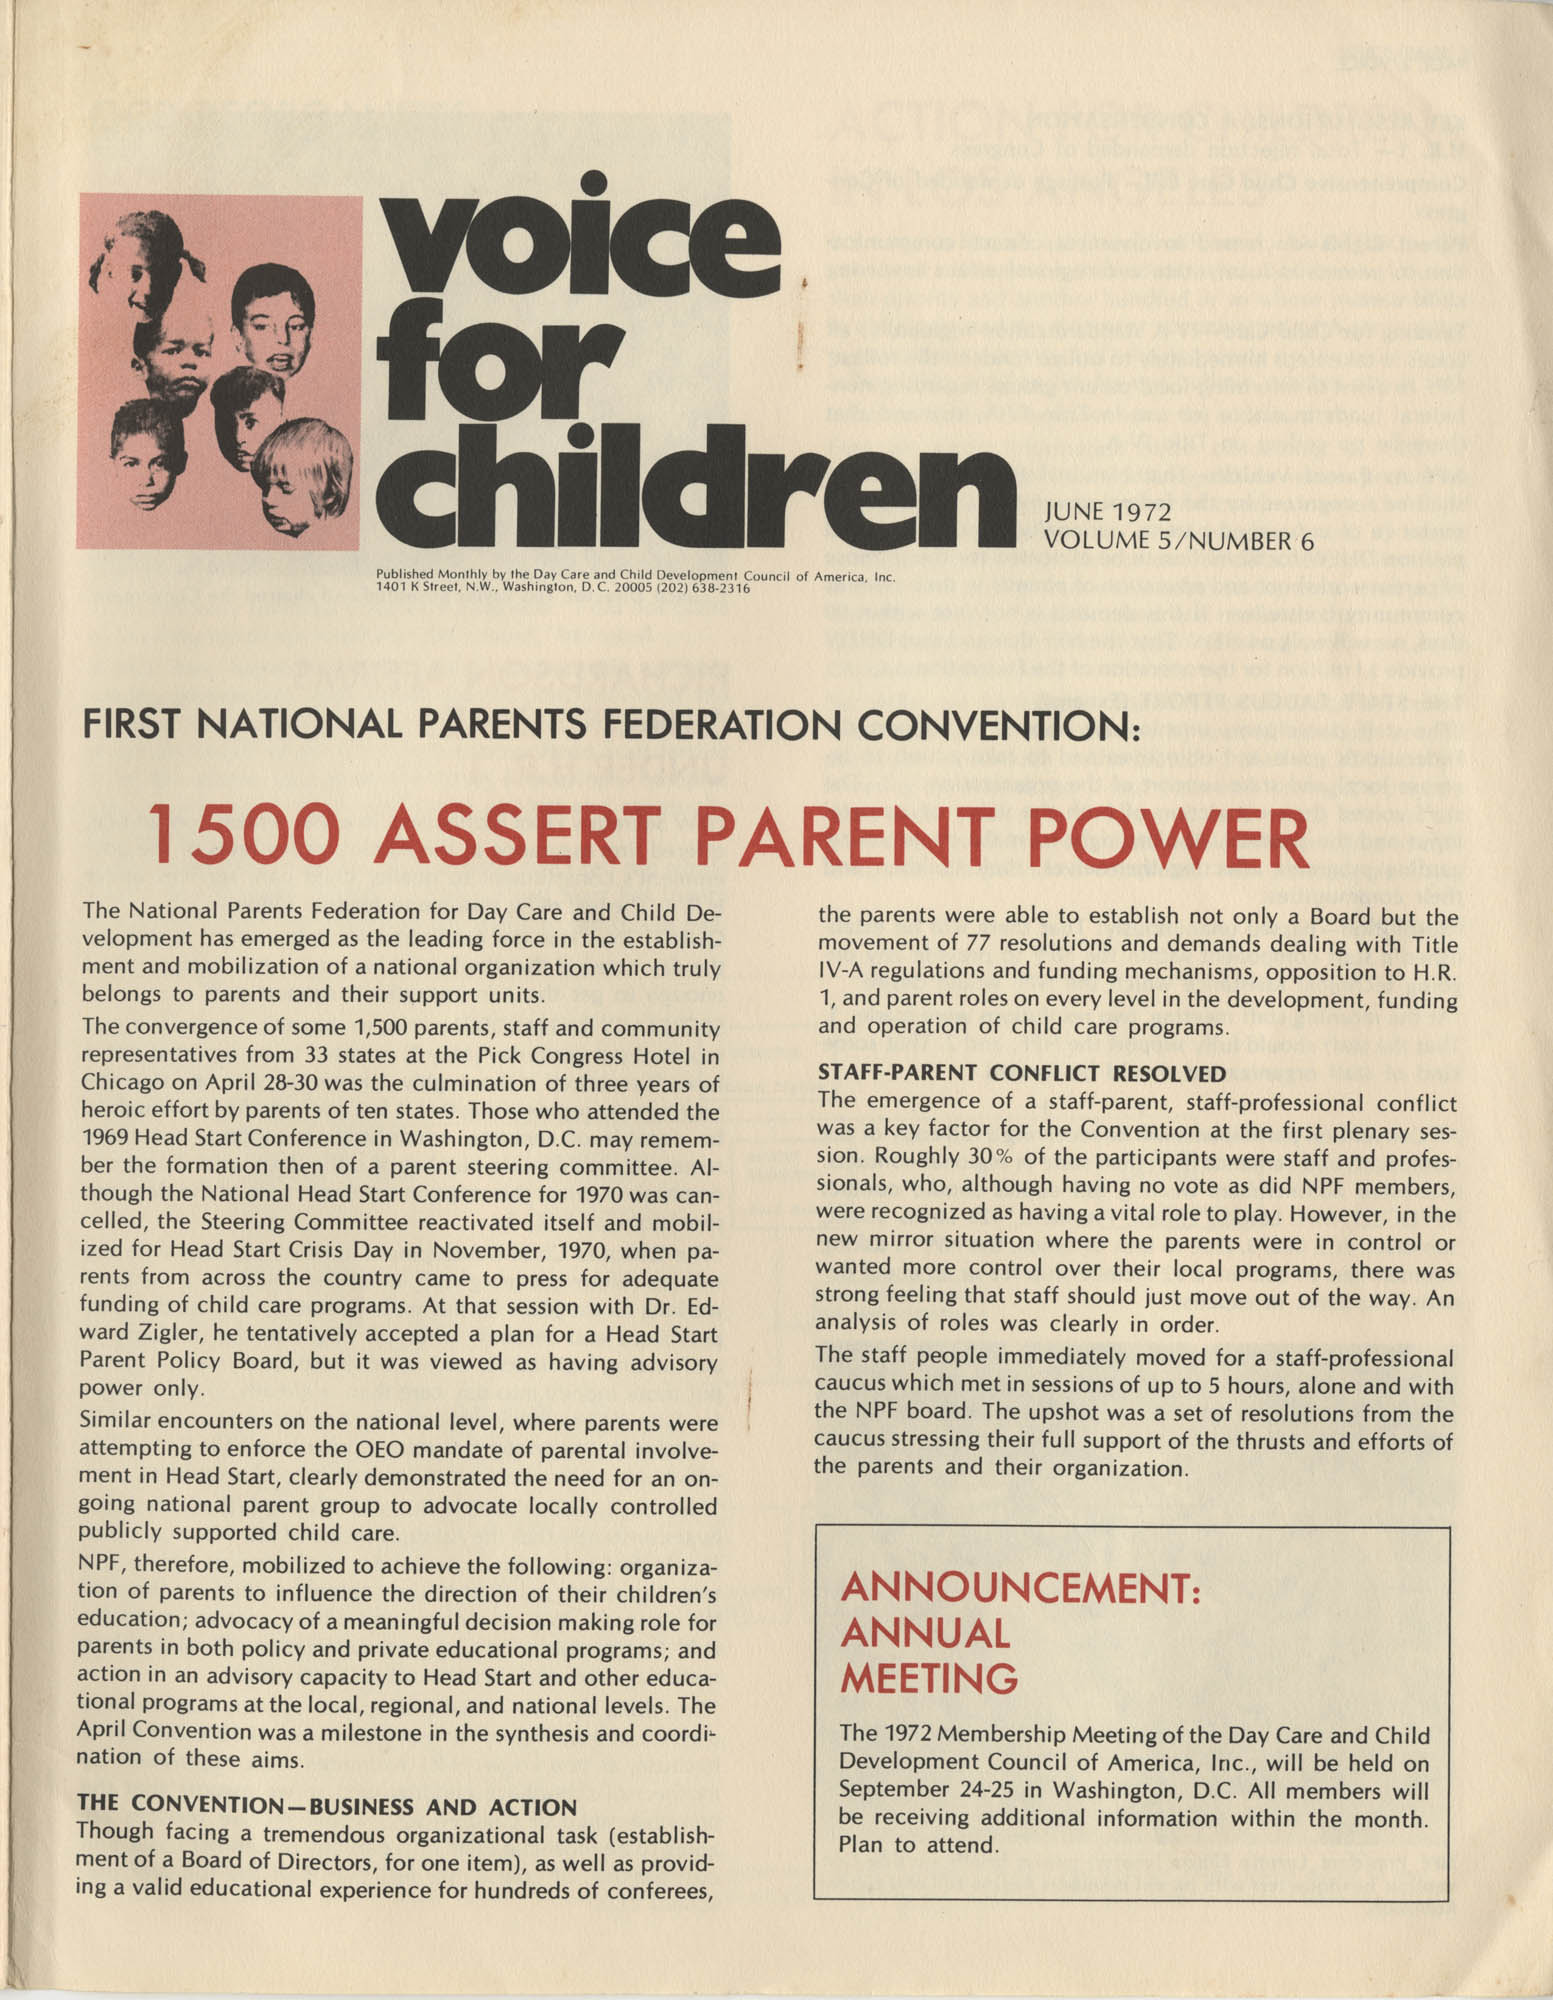 Voice For Children, Volume 5, Number 6, Cover